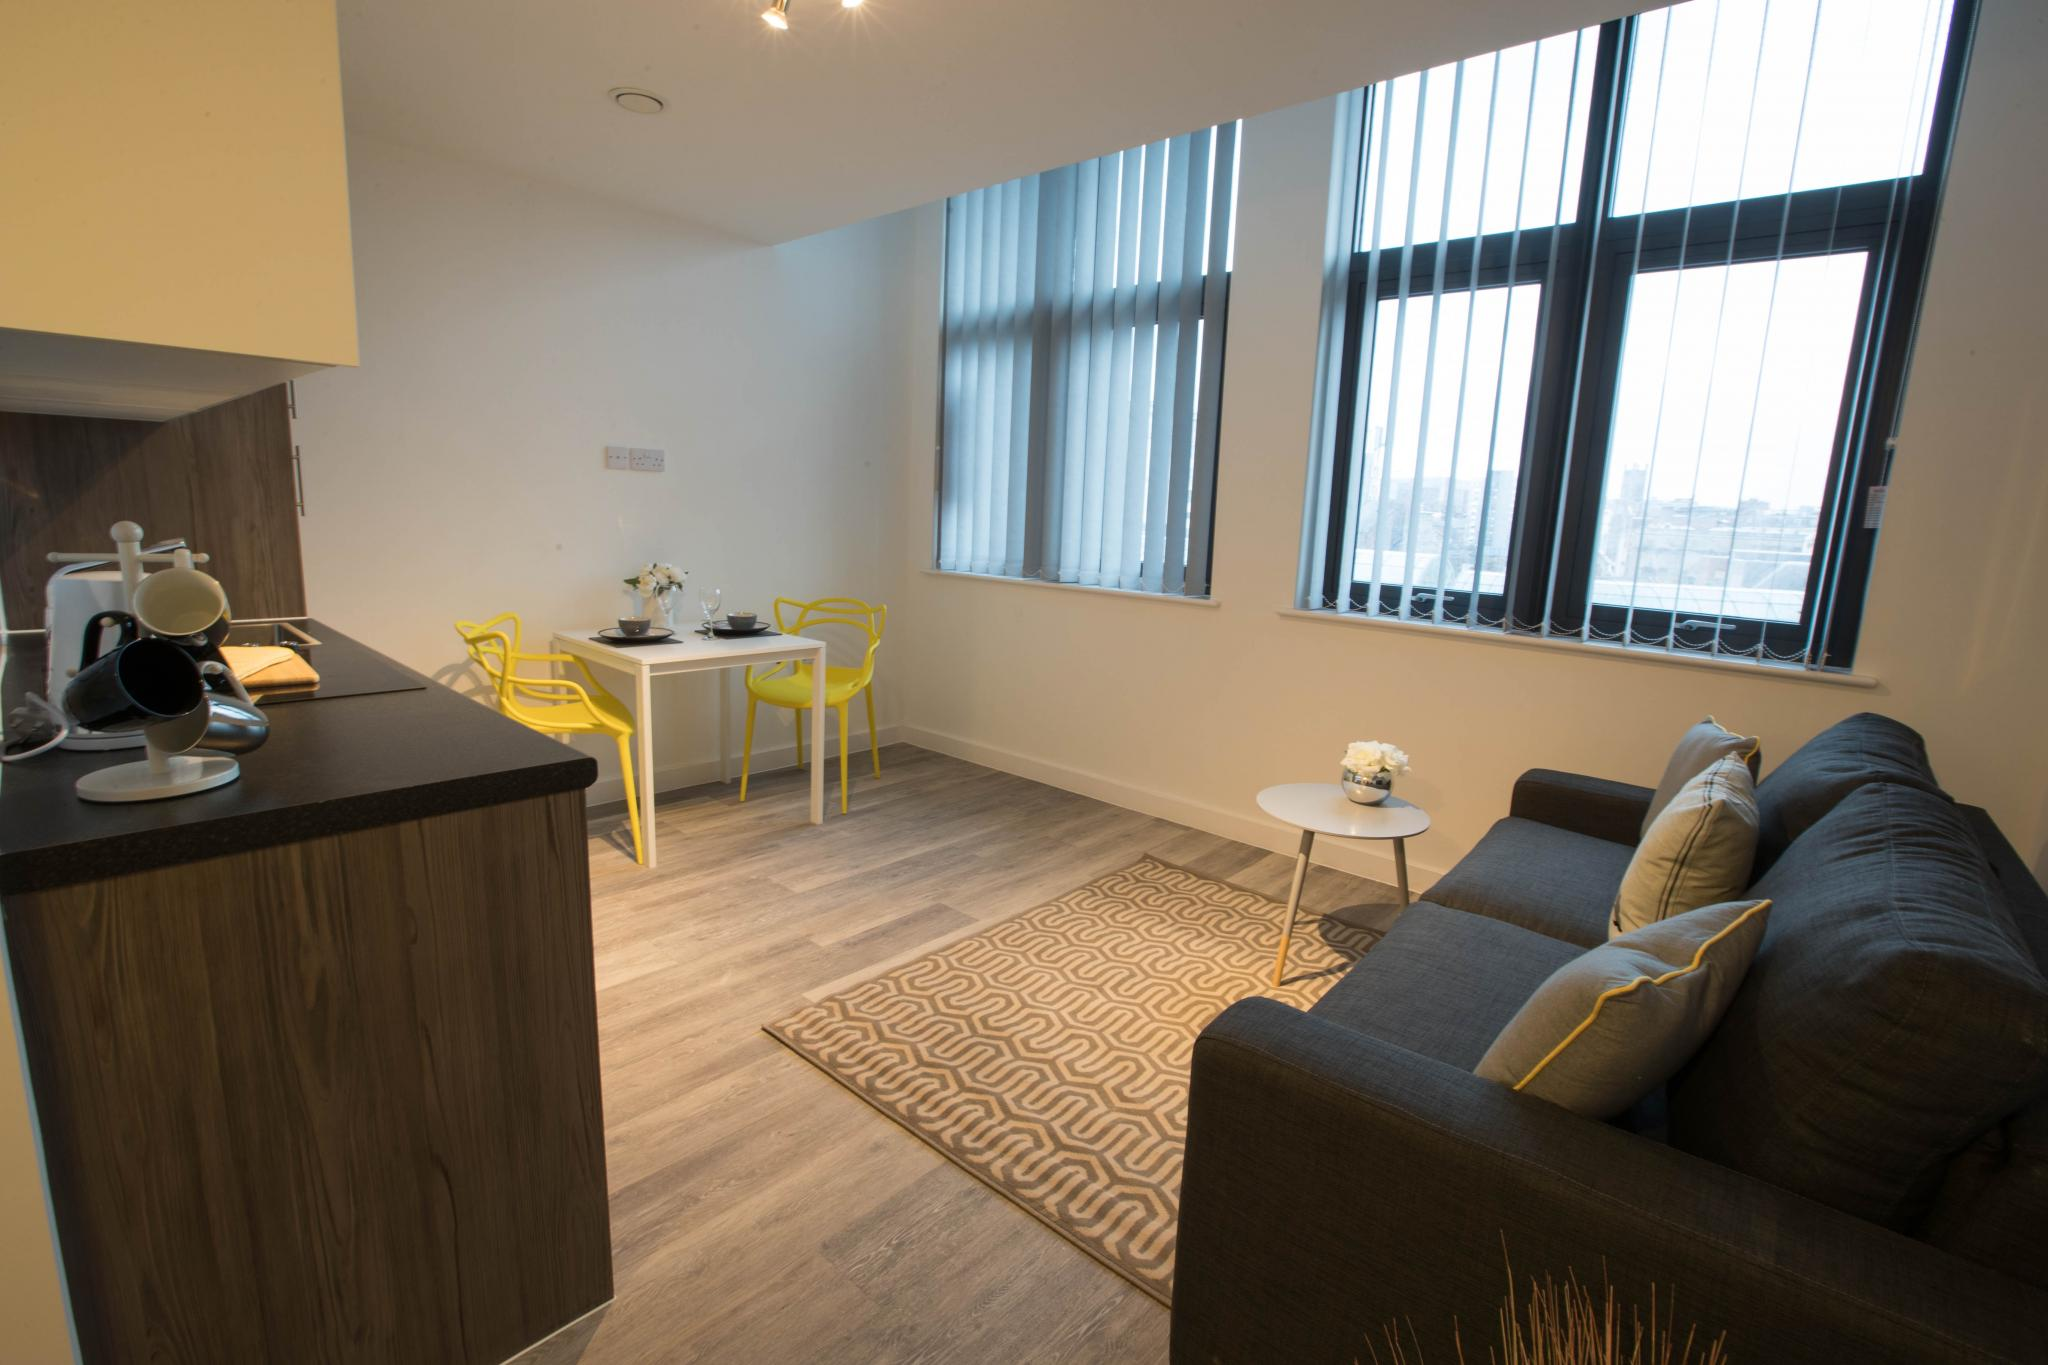 liverpool living room 3 bedroom apartments liverpool stay www indiepedia org 11463